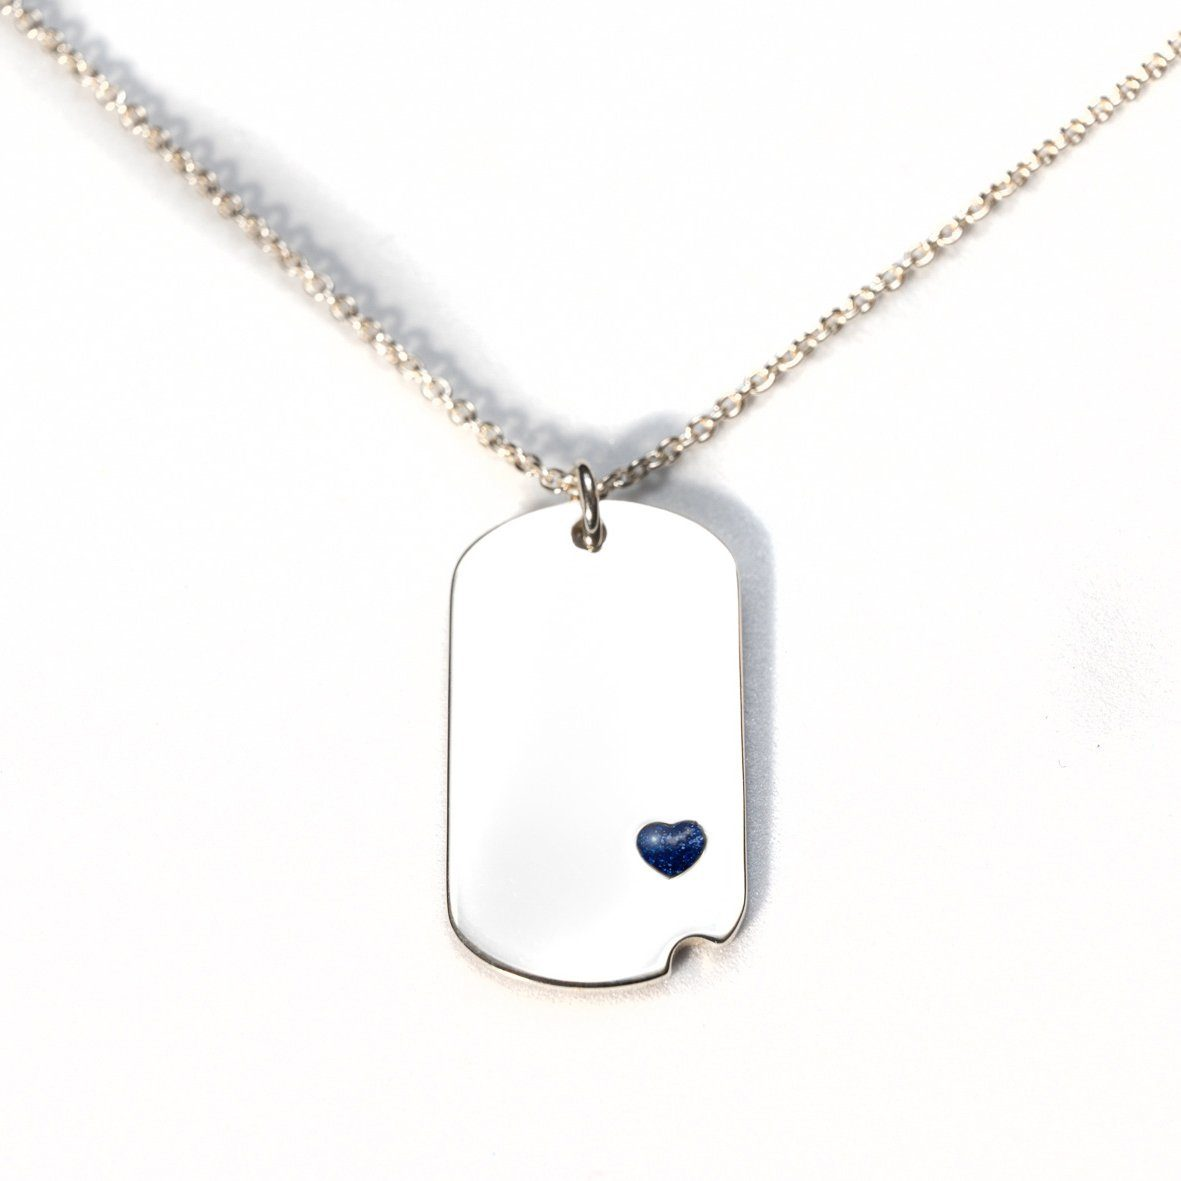 Sterling-Silver Dog Tag with Everence Inlay - Small